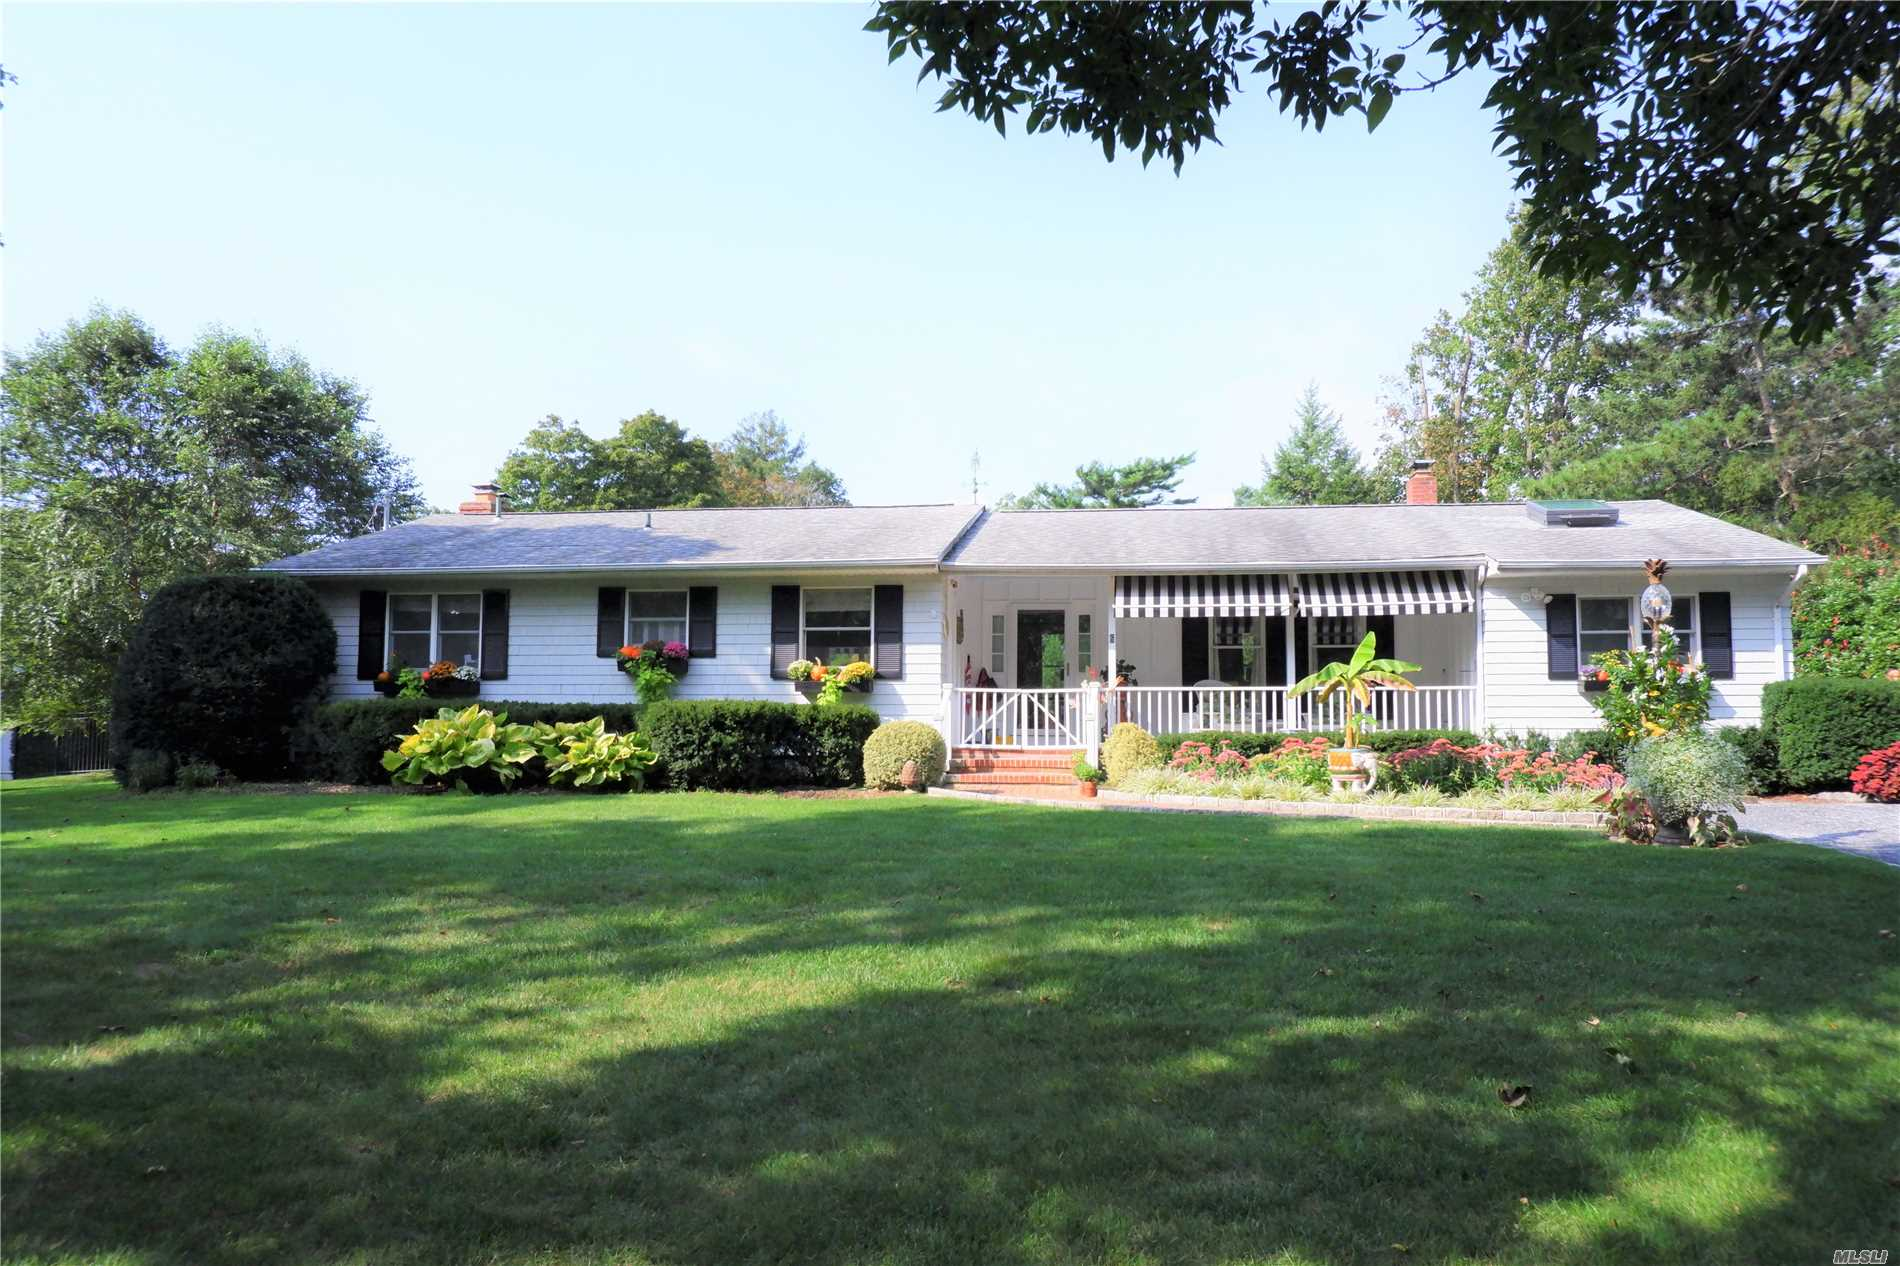 Picture Perfect L Shape Ranch In Bellport Village South! Located On .45 Acres W/ Ample Room For A Pool / No Variance Necessary. Fenced And Professionally Landscaped Backyard W/ Storage Shed And Potting Area. Gleaming Red Oak Floors Special Woodworking 2 Gas Fireplaces.Totally Renovated Kitchen And Mbr En Suite. Substantially Upgraded Heating Electric & Plumbing. Enjoy Watching The Joggers From Your Front Porch Or The Privacy Of A Wonderful Backyard W/ Brick Patio & Multiple Awnings For Shade.